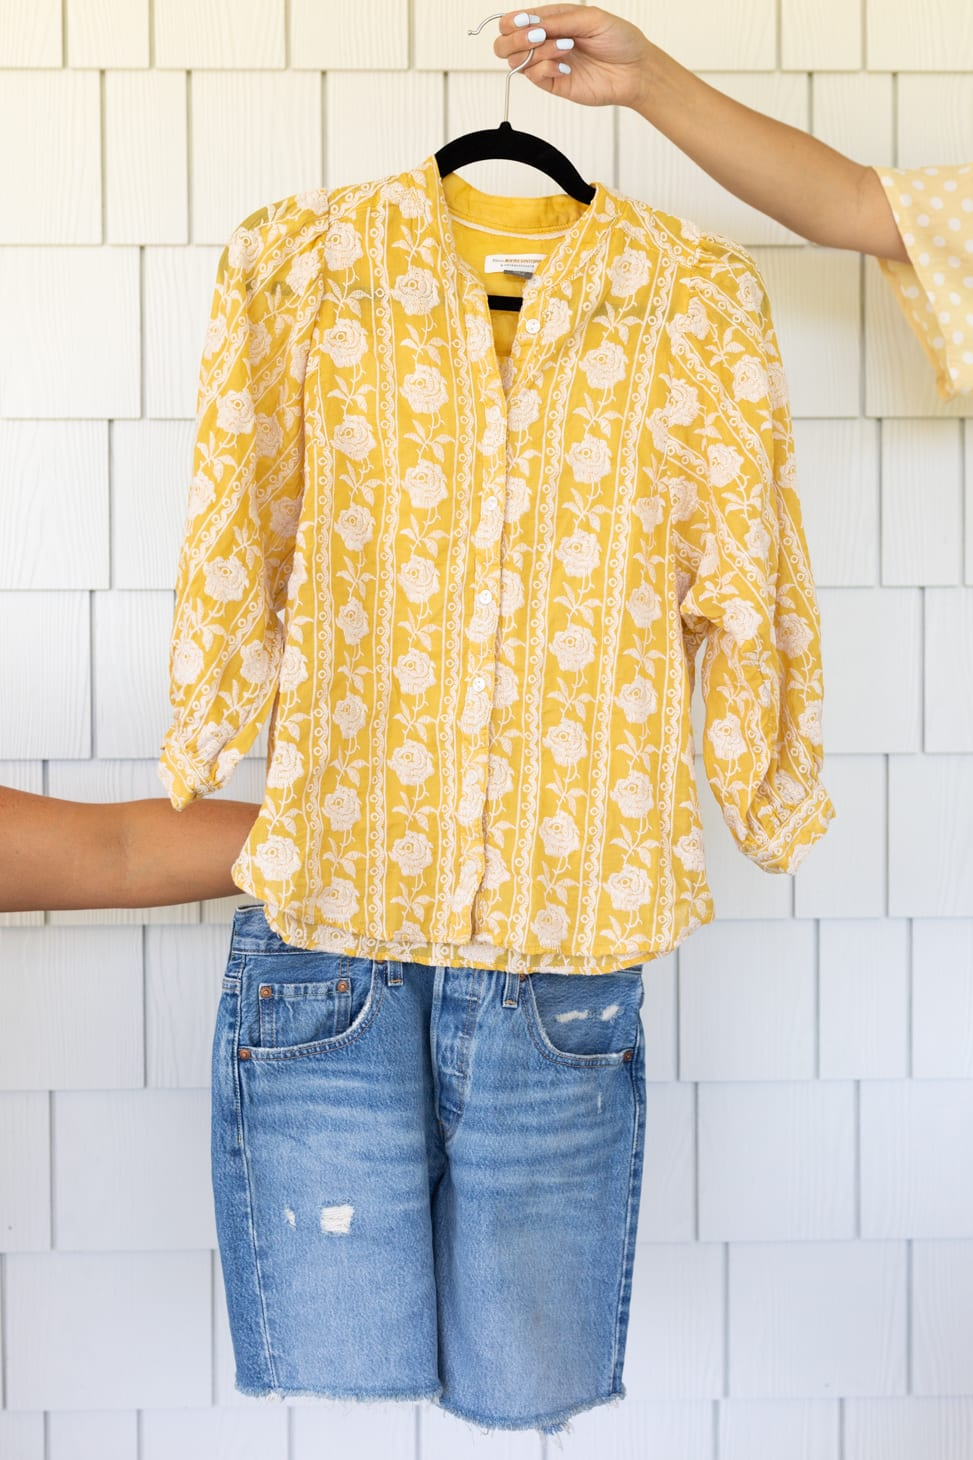 An outfit with yellow and white floral patterned button down shirt with Agolde mid-thigh cut-off denim shorts, one of her farm-inspired outfits.